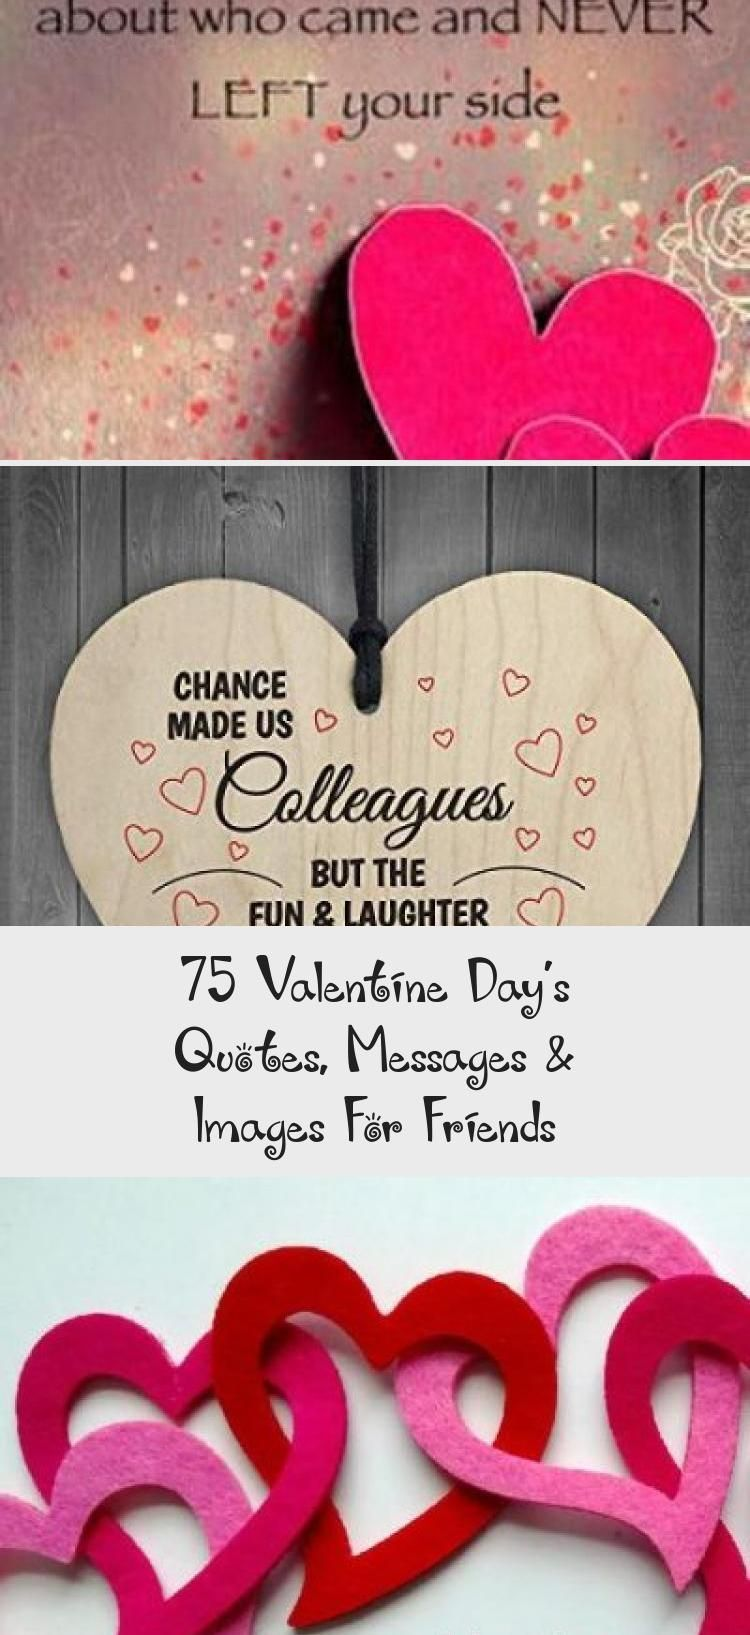 Funny Valentine Day S Quotes For Friends Valentinesdayquotesfriendship F In 2020 Valentines Day Quotes For Friends Funny Valentines Day Quotes Valentine S Day Quotes